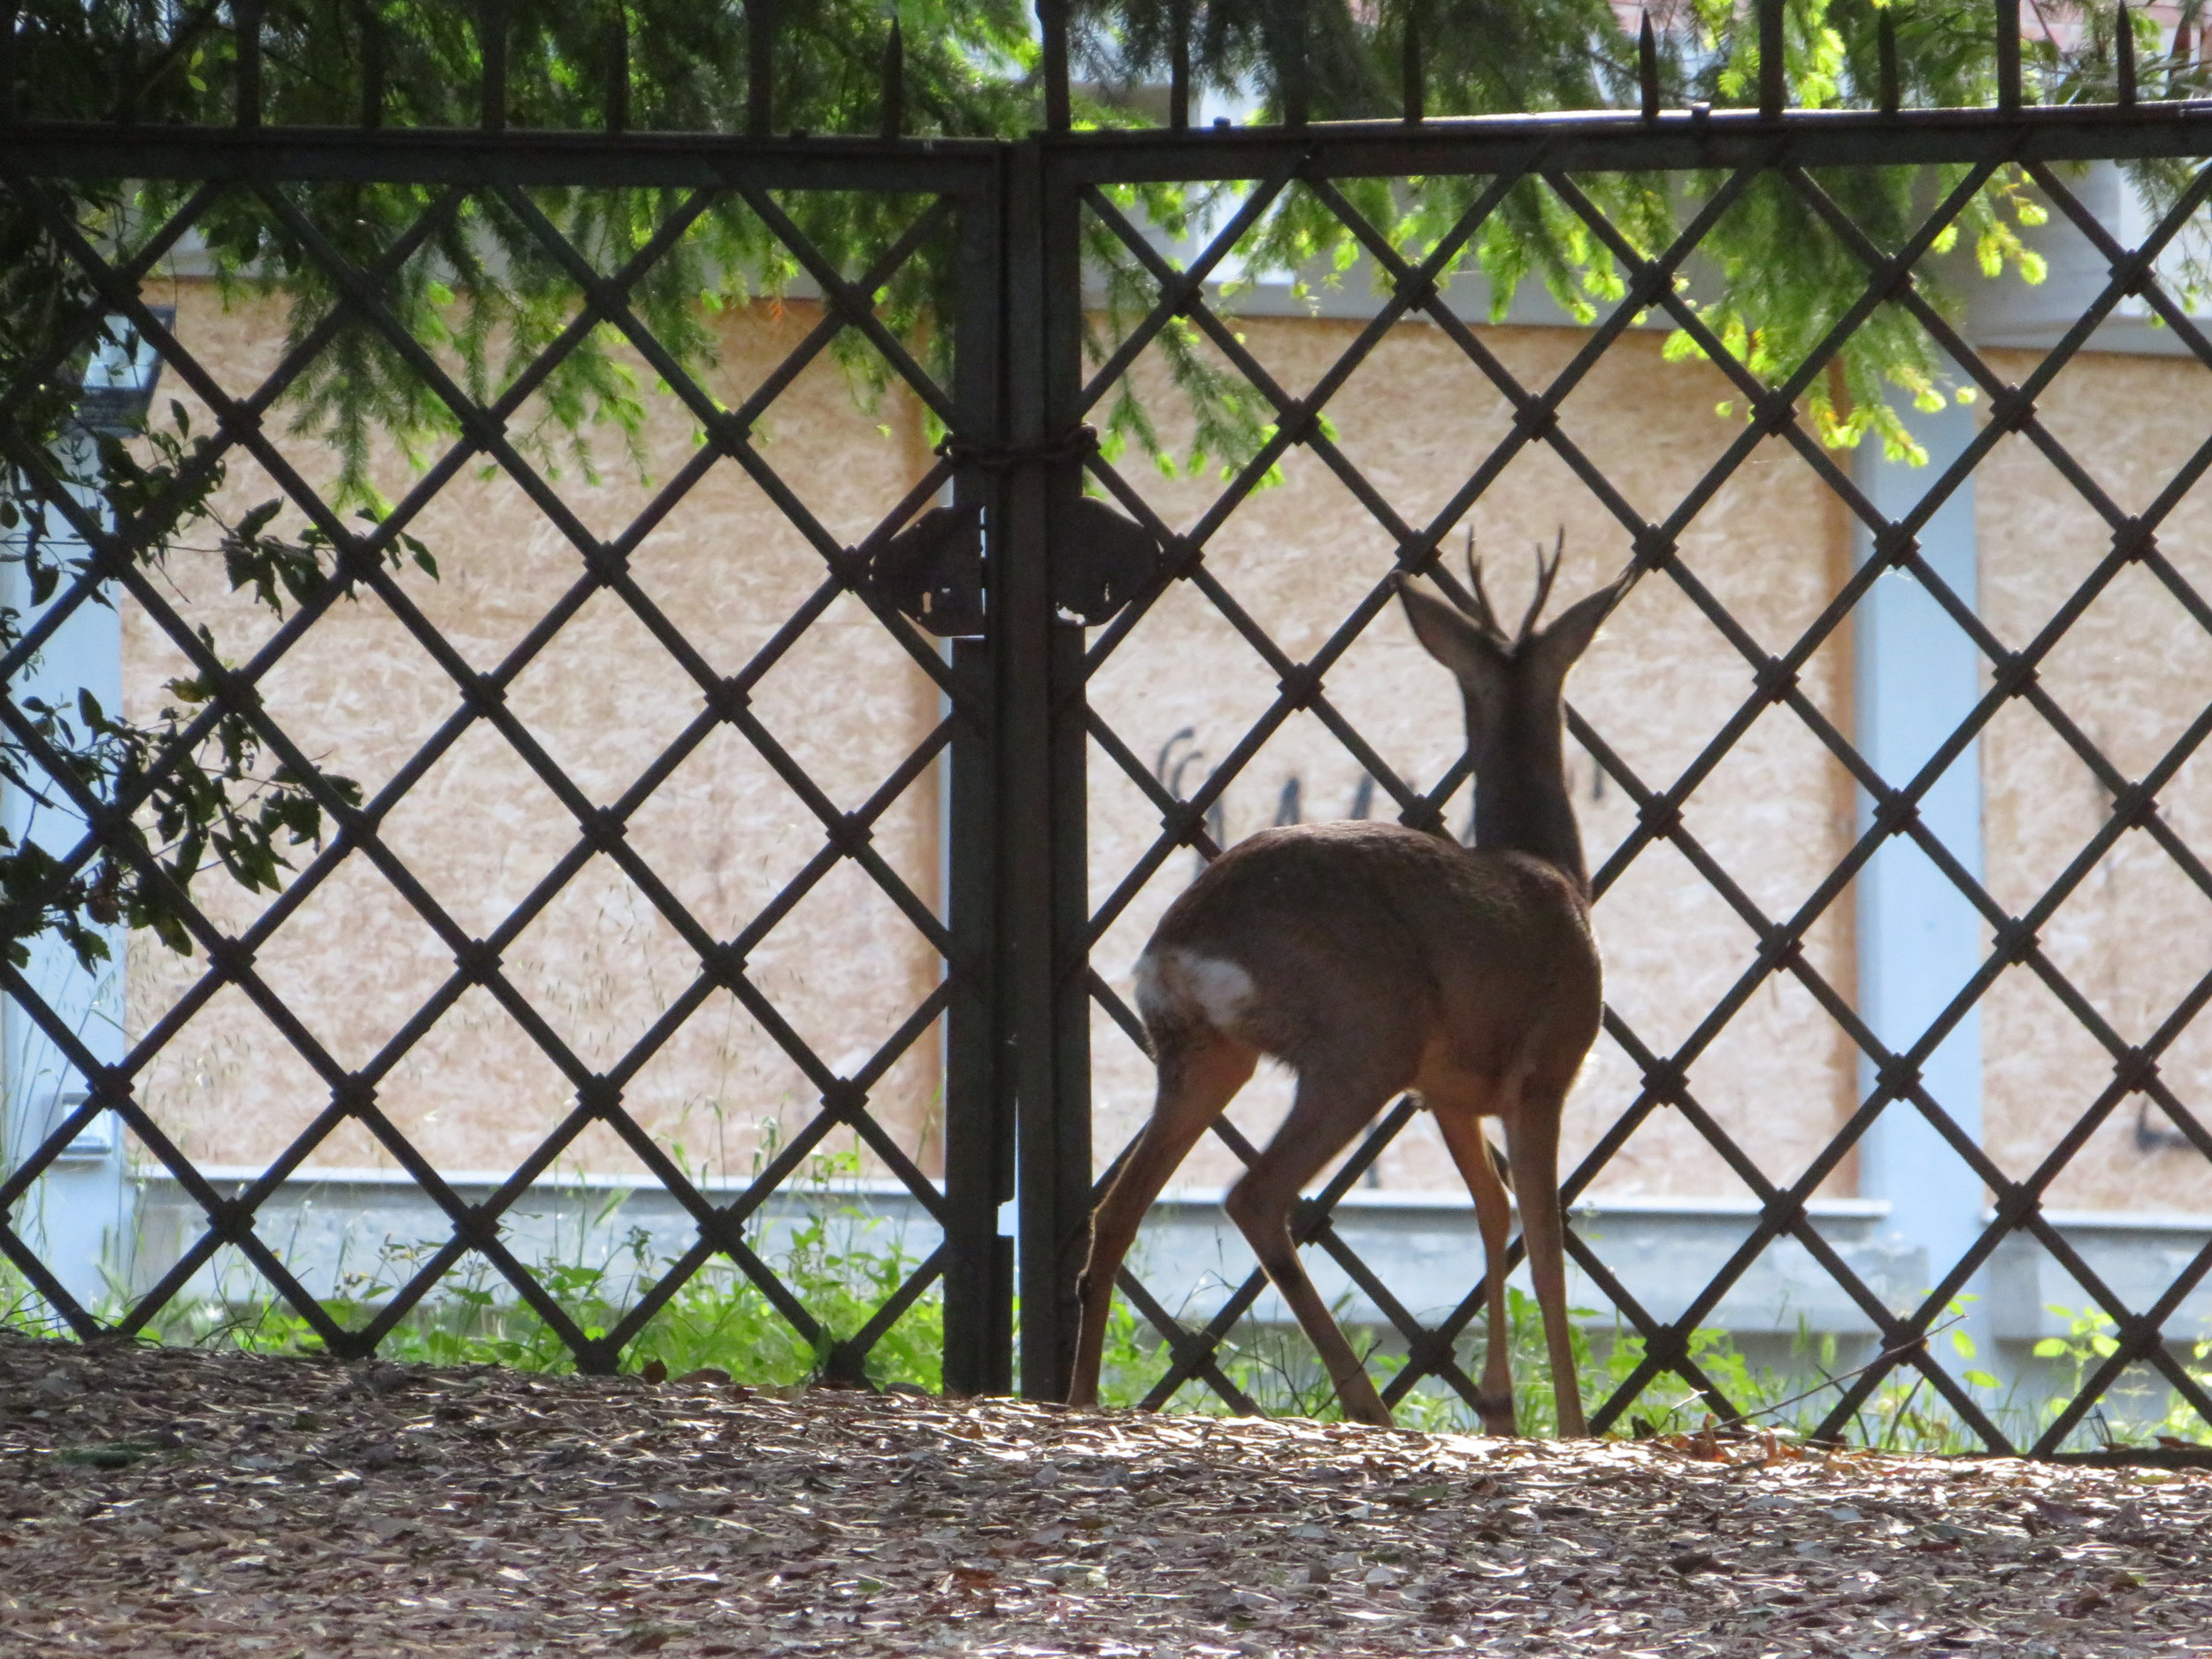 We saw three deer today… fleetingly. They're small and fast. This guy was outside a villa fence and couldn't figure out where to go to continue on his way.